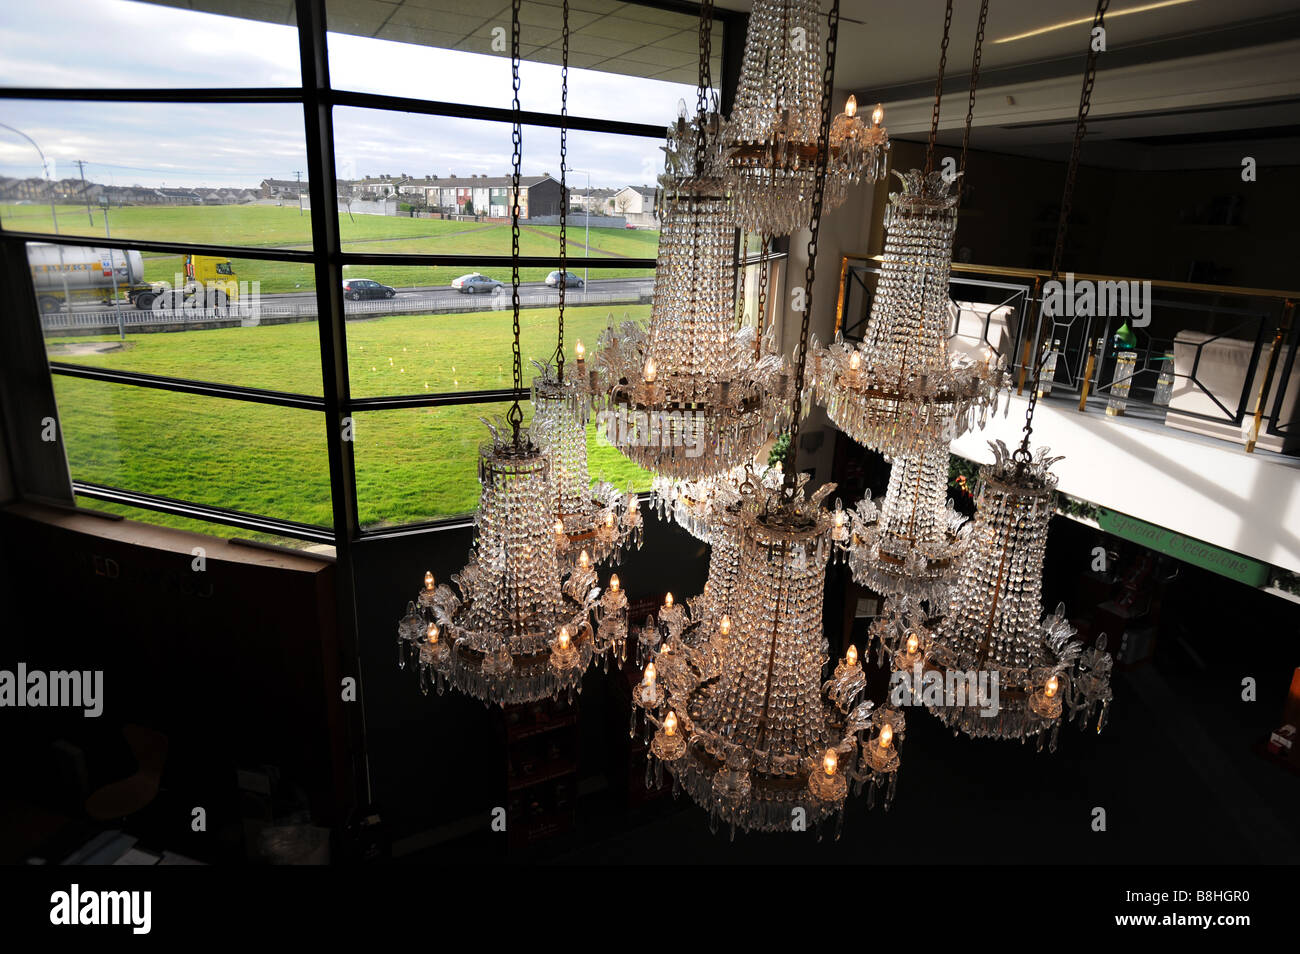 The Waterford crystal visitors centre in Waterford Ireland - Stock Image